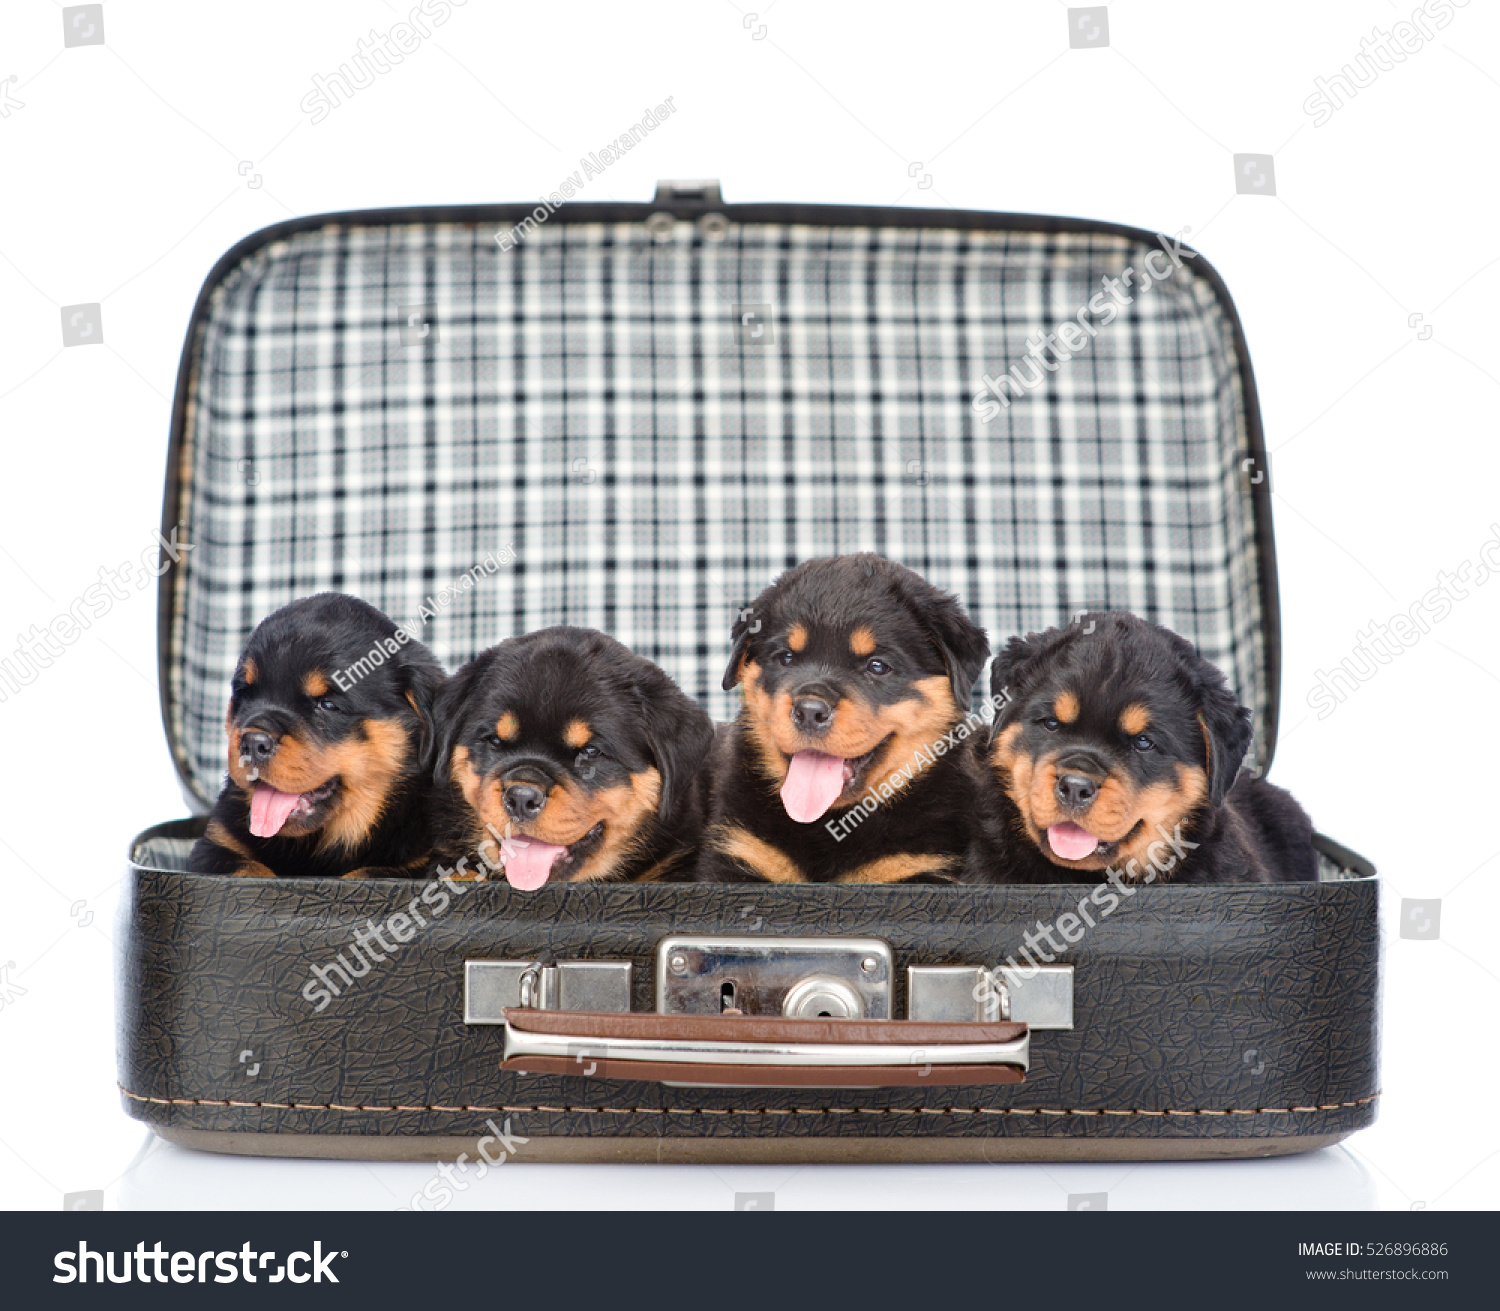 Group of puppies Rottweiler in the bag isolated on white background